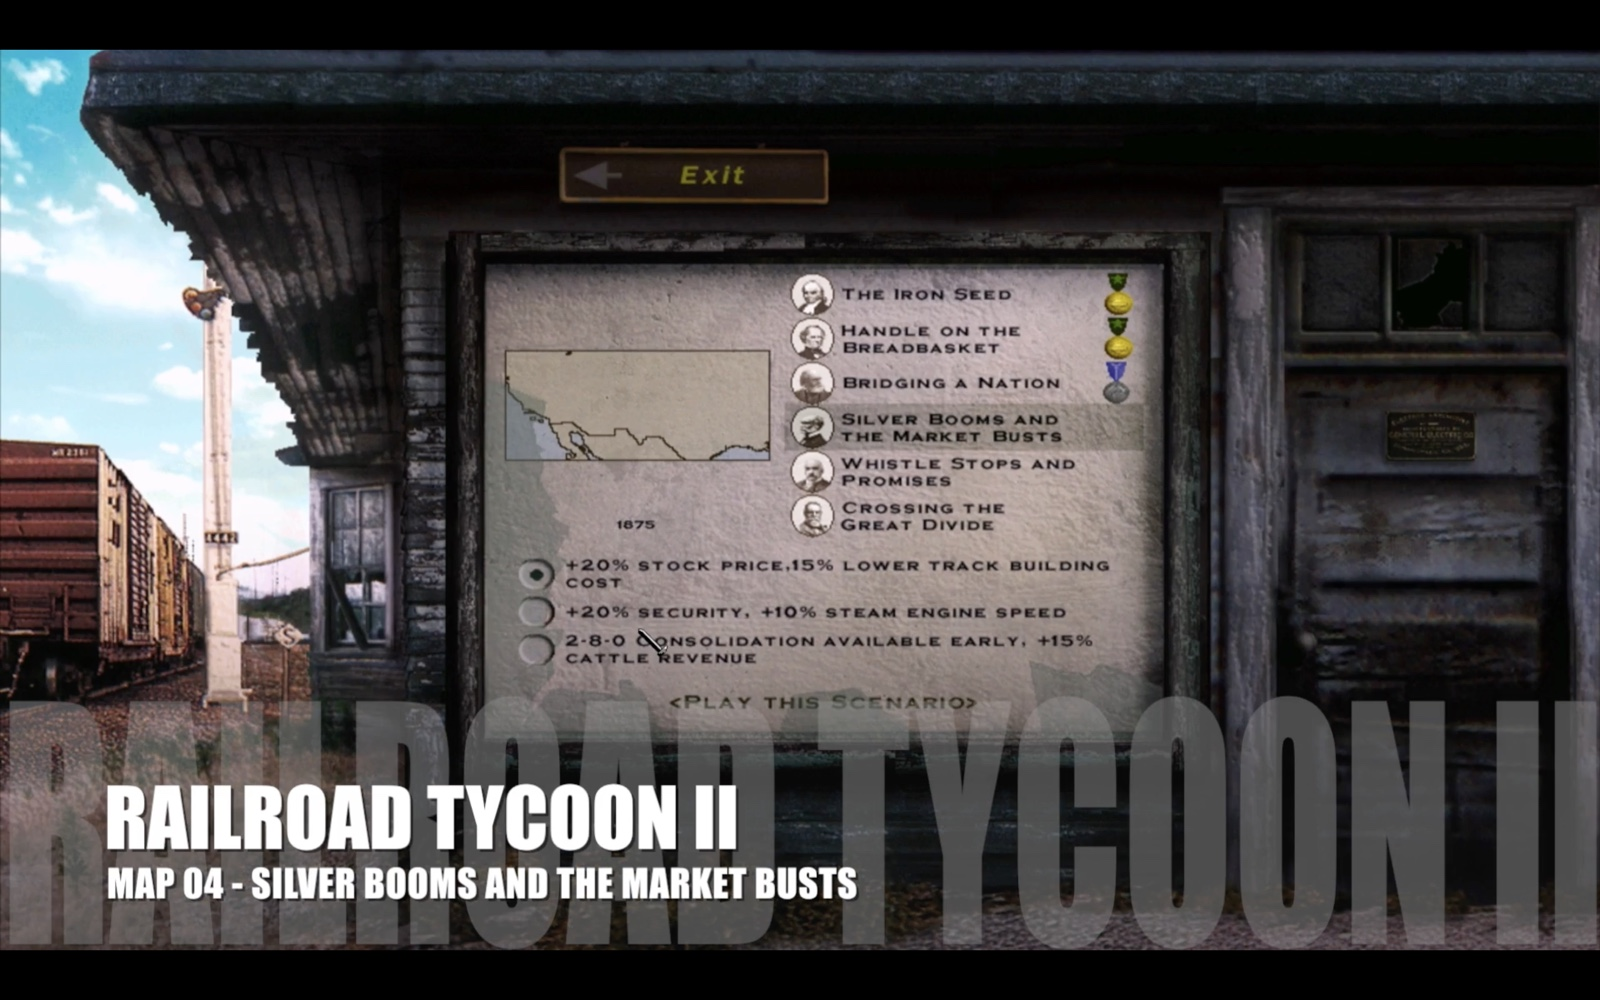 Railroad Tycoon II – Map 04 – Silver Booms and the Market Busts